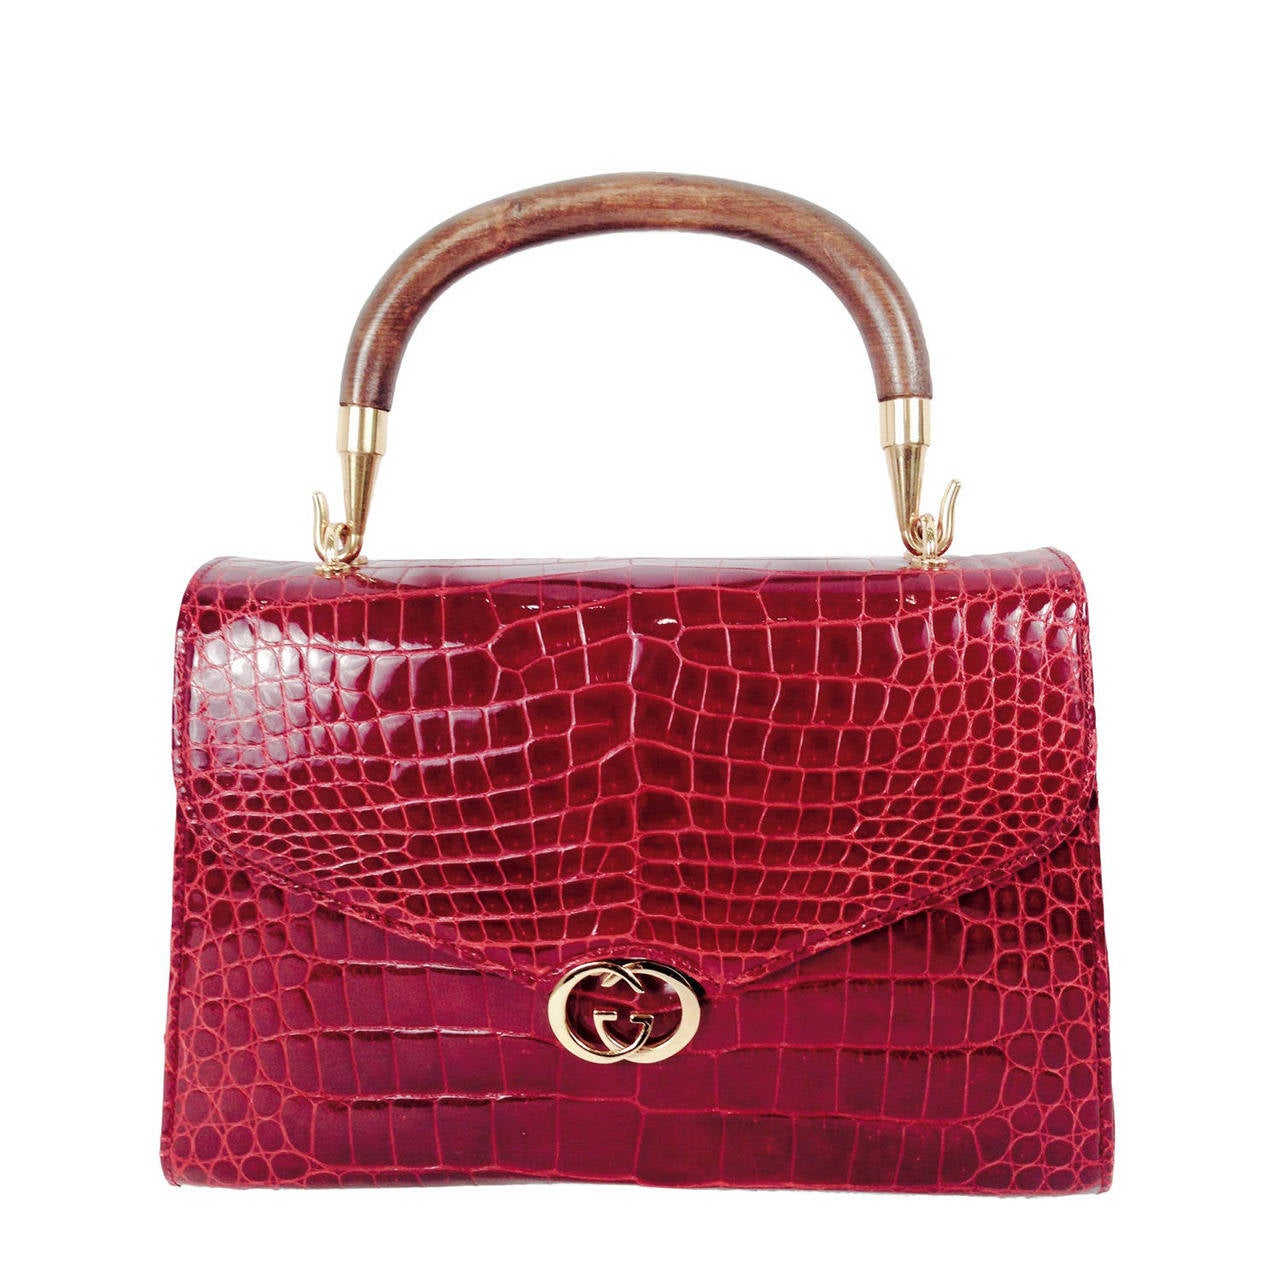 Gucci Burgundy Vintage Crocodile Handbag For